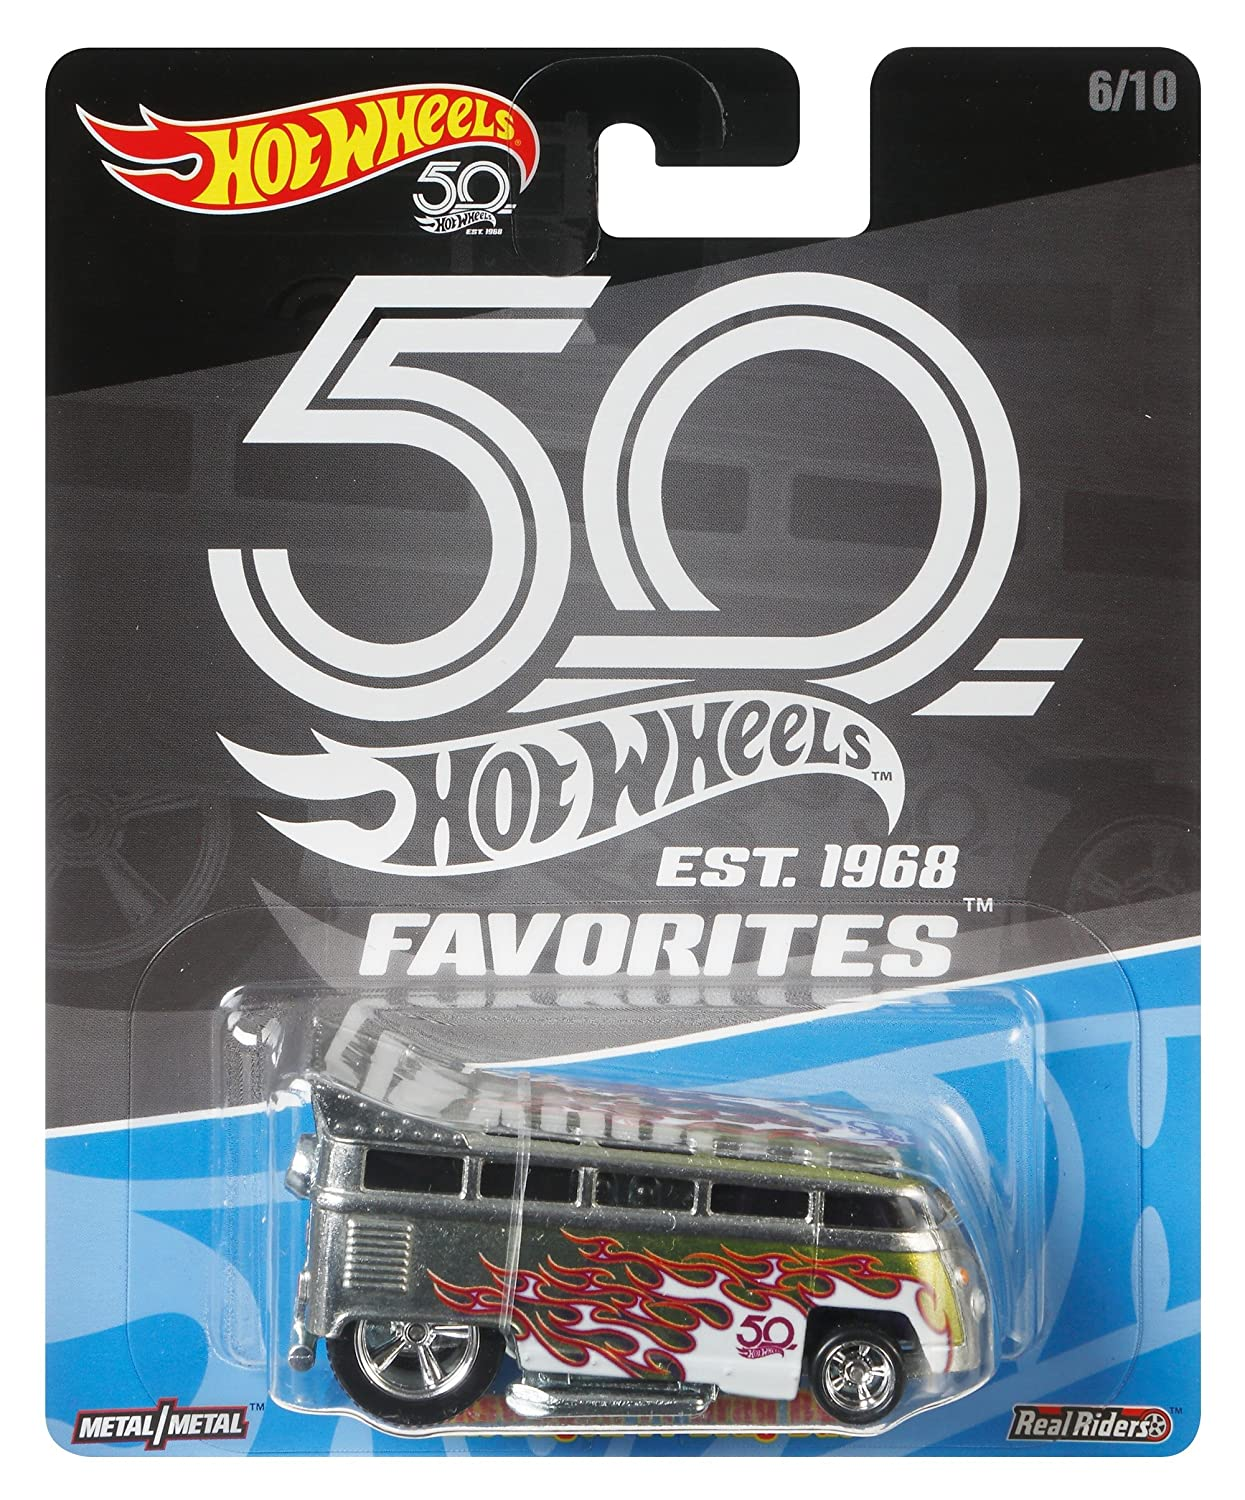 Hot Wheels 50th Anniversary Favs Volkswagen T1 Drag Bus Mattel FLF41